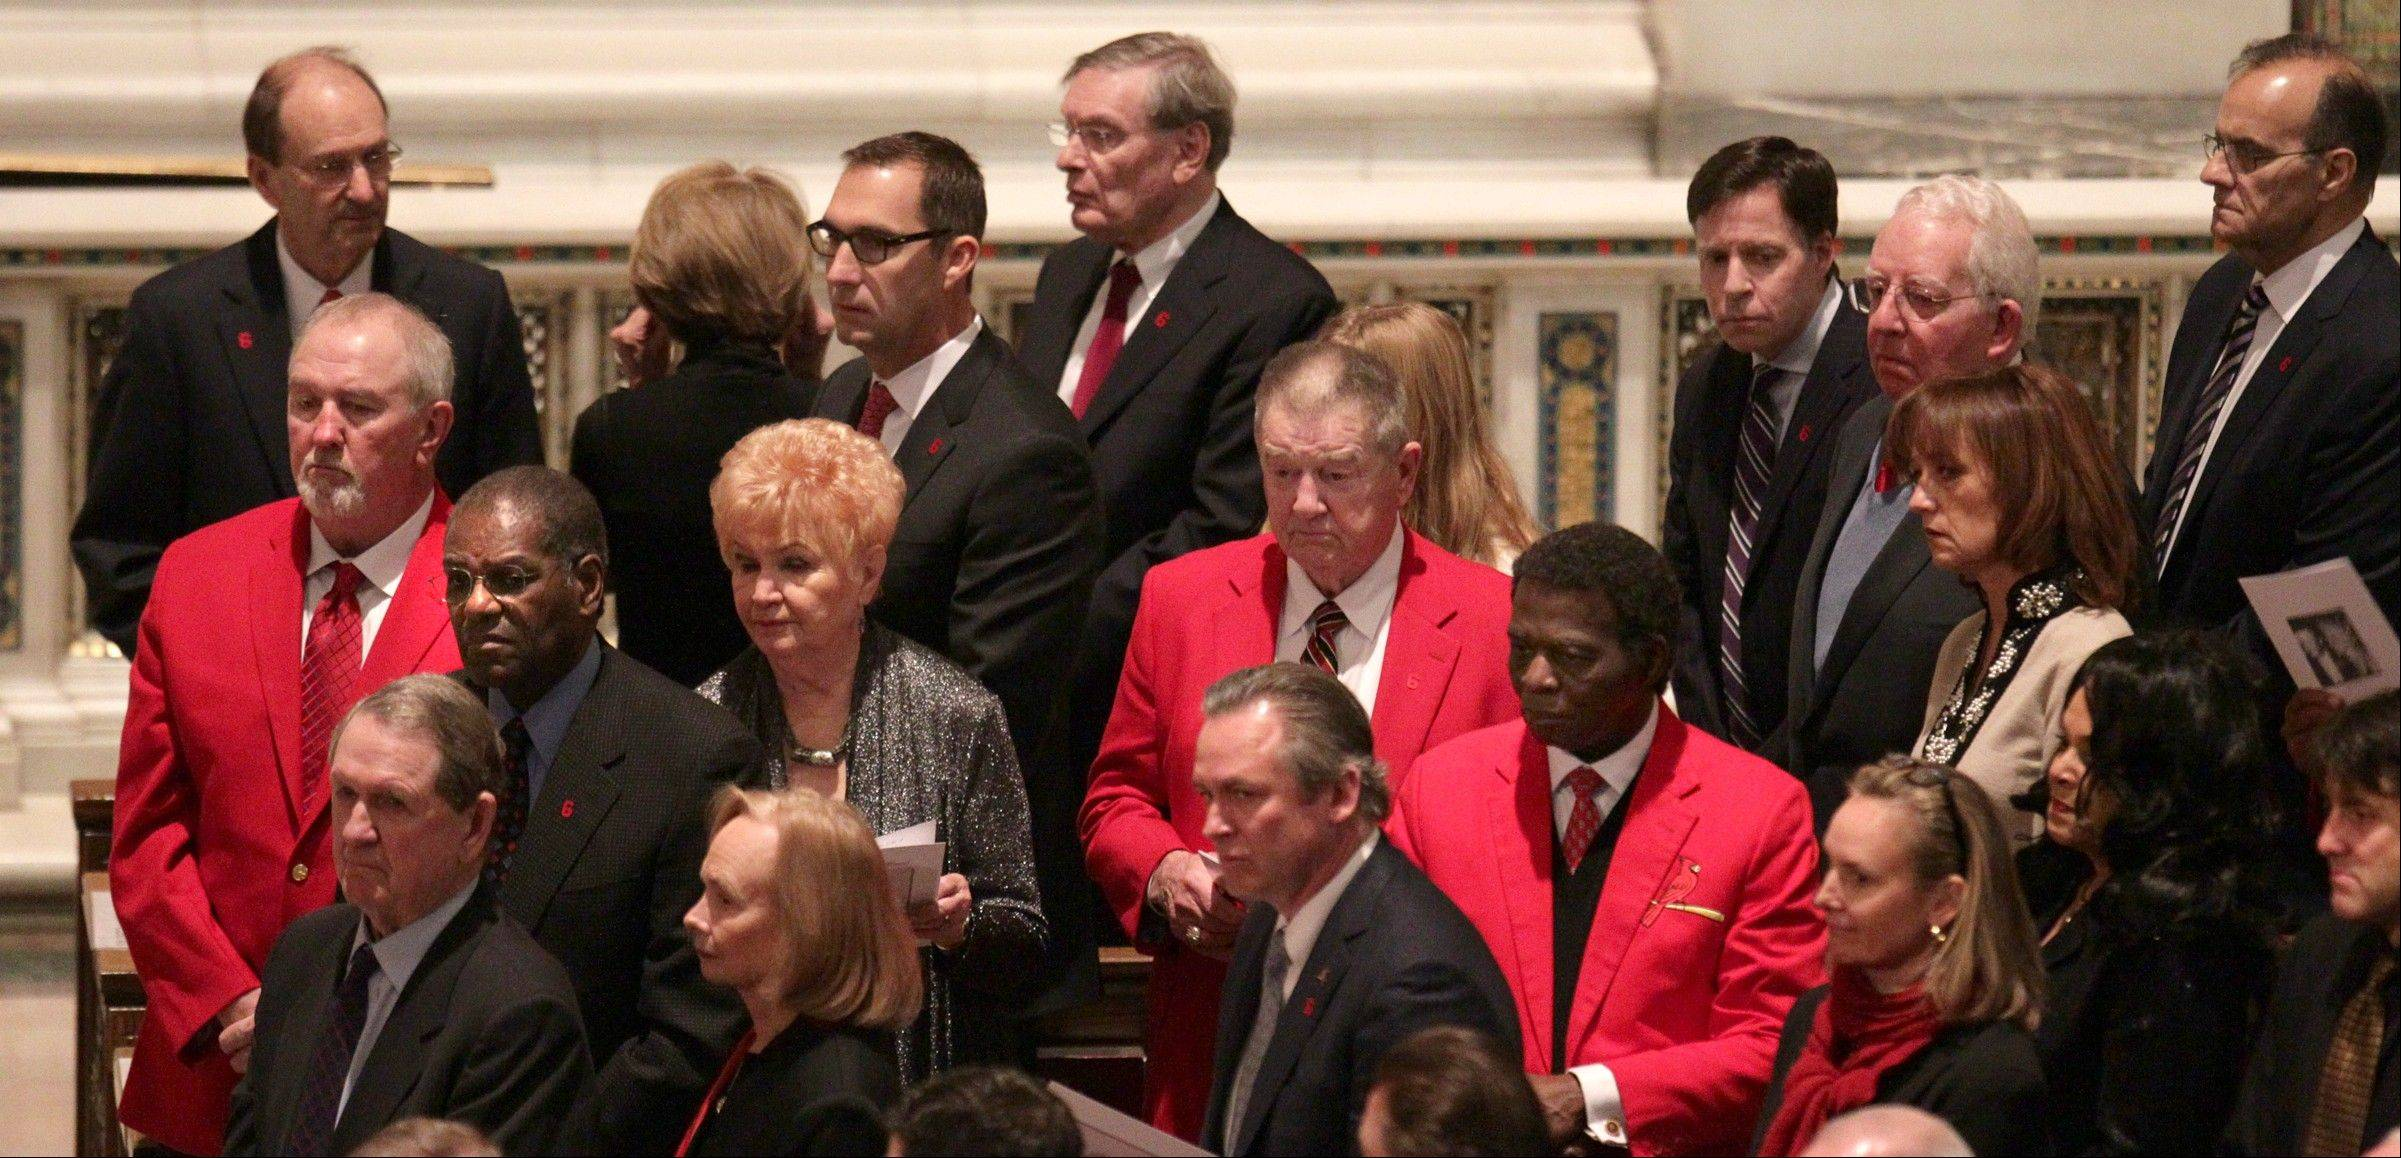 Mourners including former St. Louis Cardinals player and managers, Cardinals ownership and other baseball dignitaries, including commissioner Bud Selig, top center, watch the arrival of the casket of former St. Louis Cardinals baseball player Stan Musial as it arrives in the Cathedral Basilica of St. Louis for his Musial's funeral Mass on Saturday, Jan. 26, 2013 in St. Louis. Musial died Saturday, Jan. 19, 2013. He was 92.